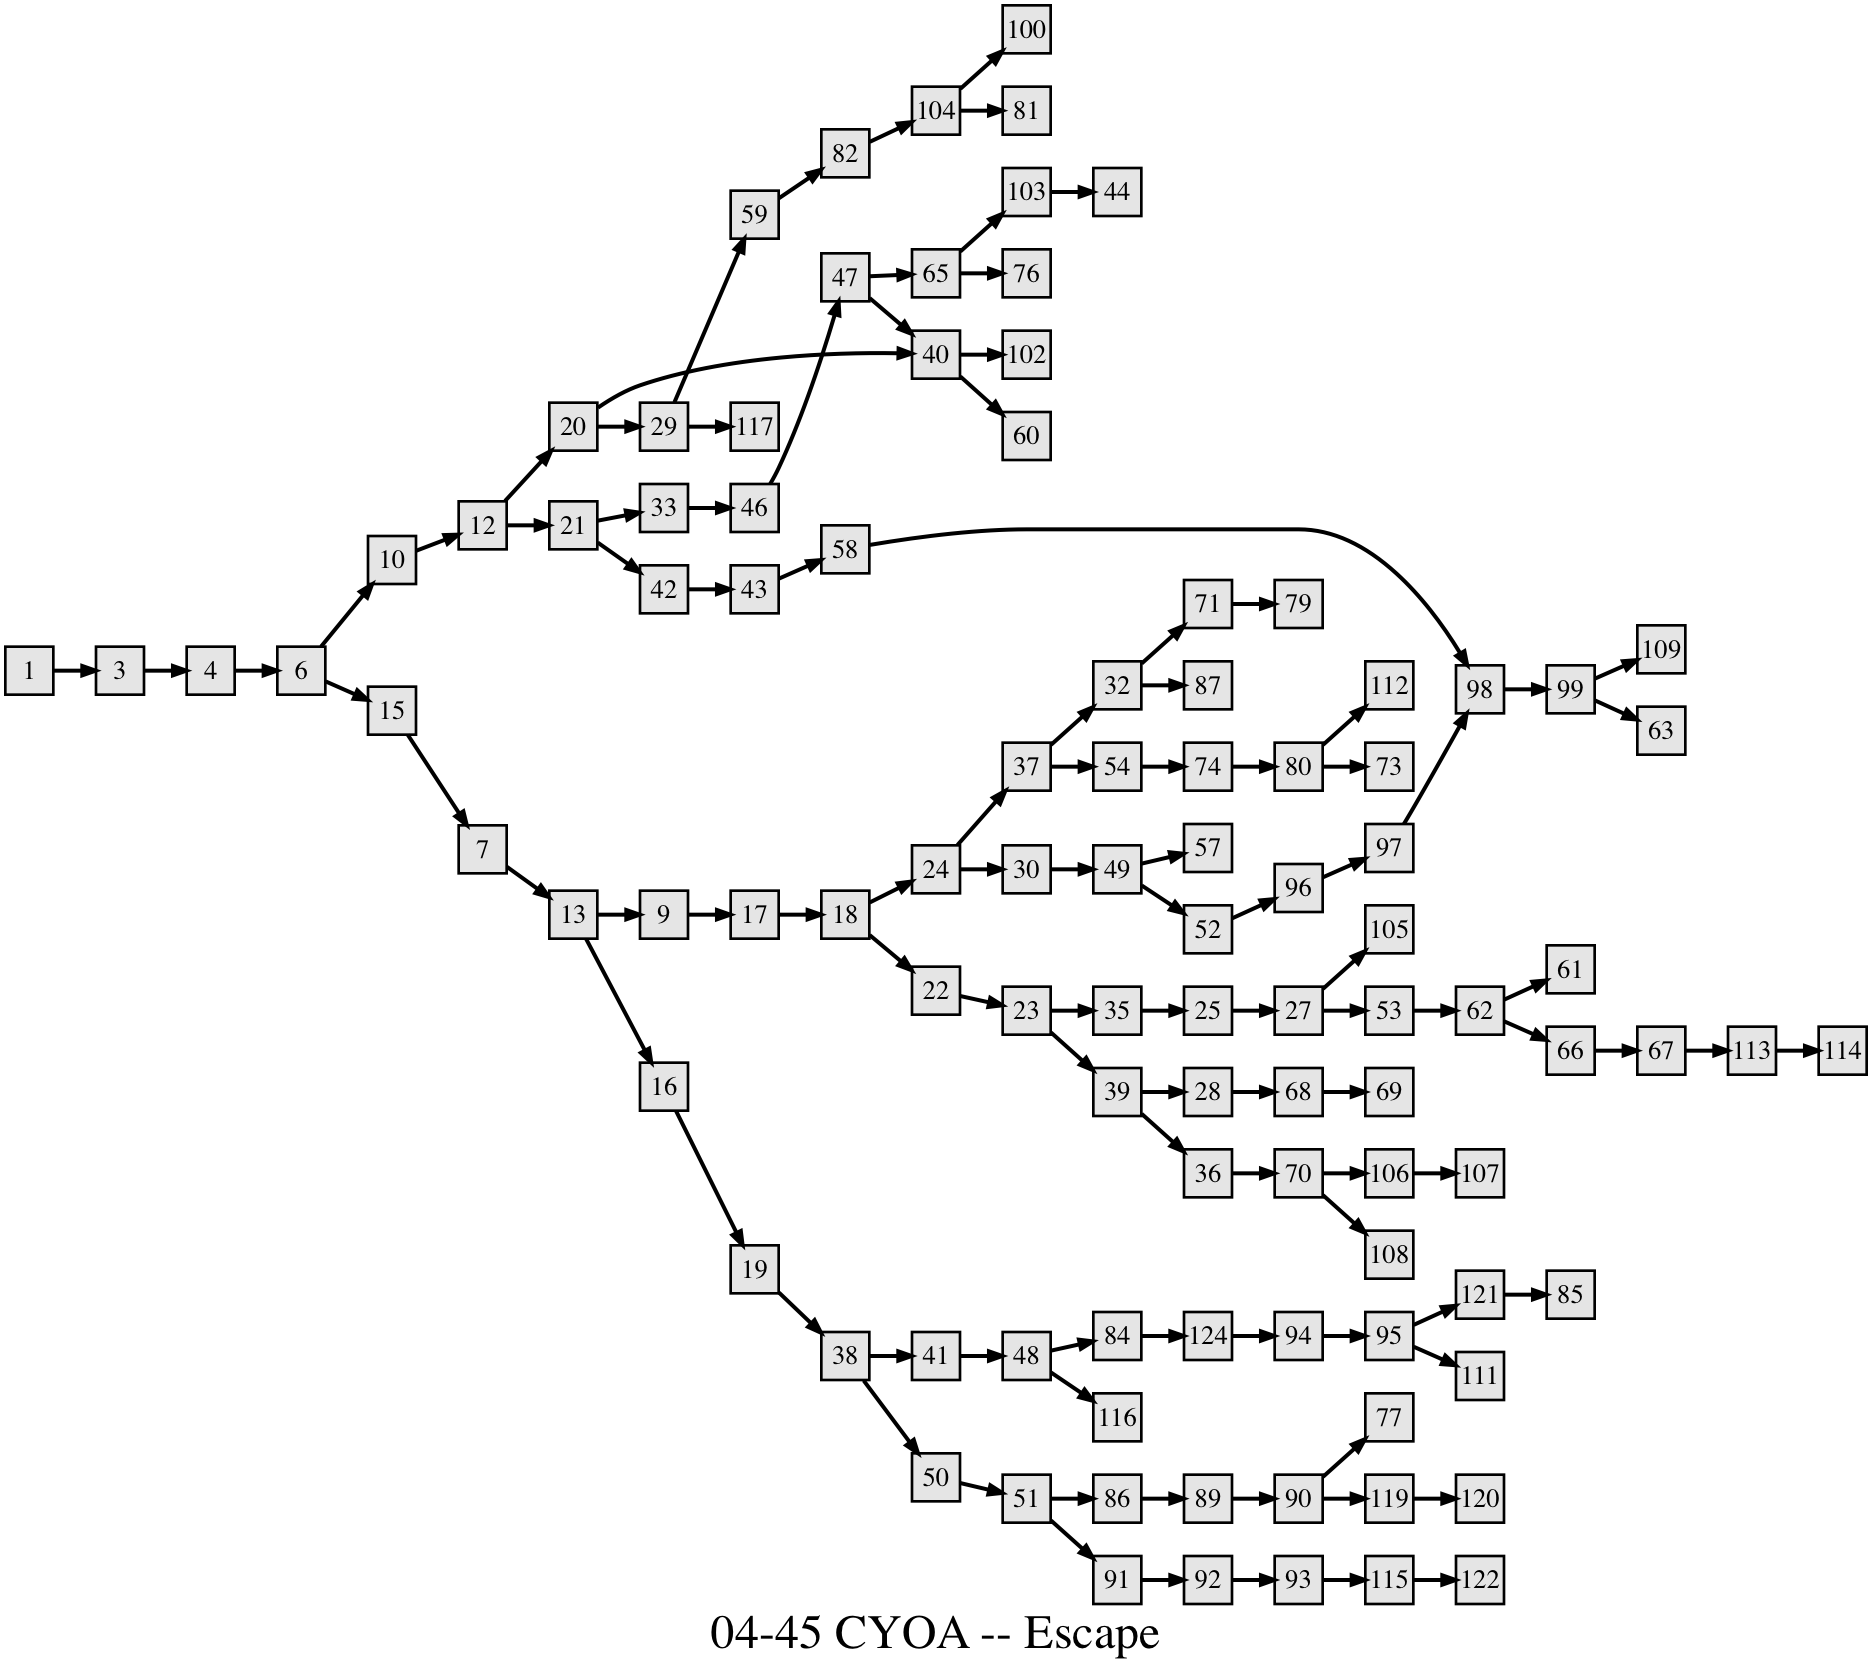 network graph image